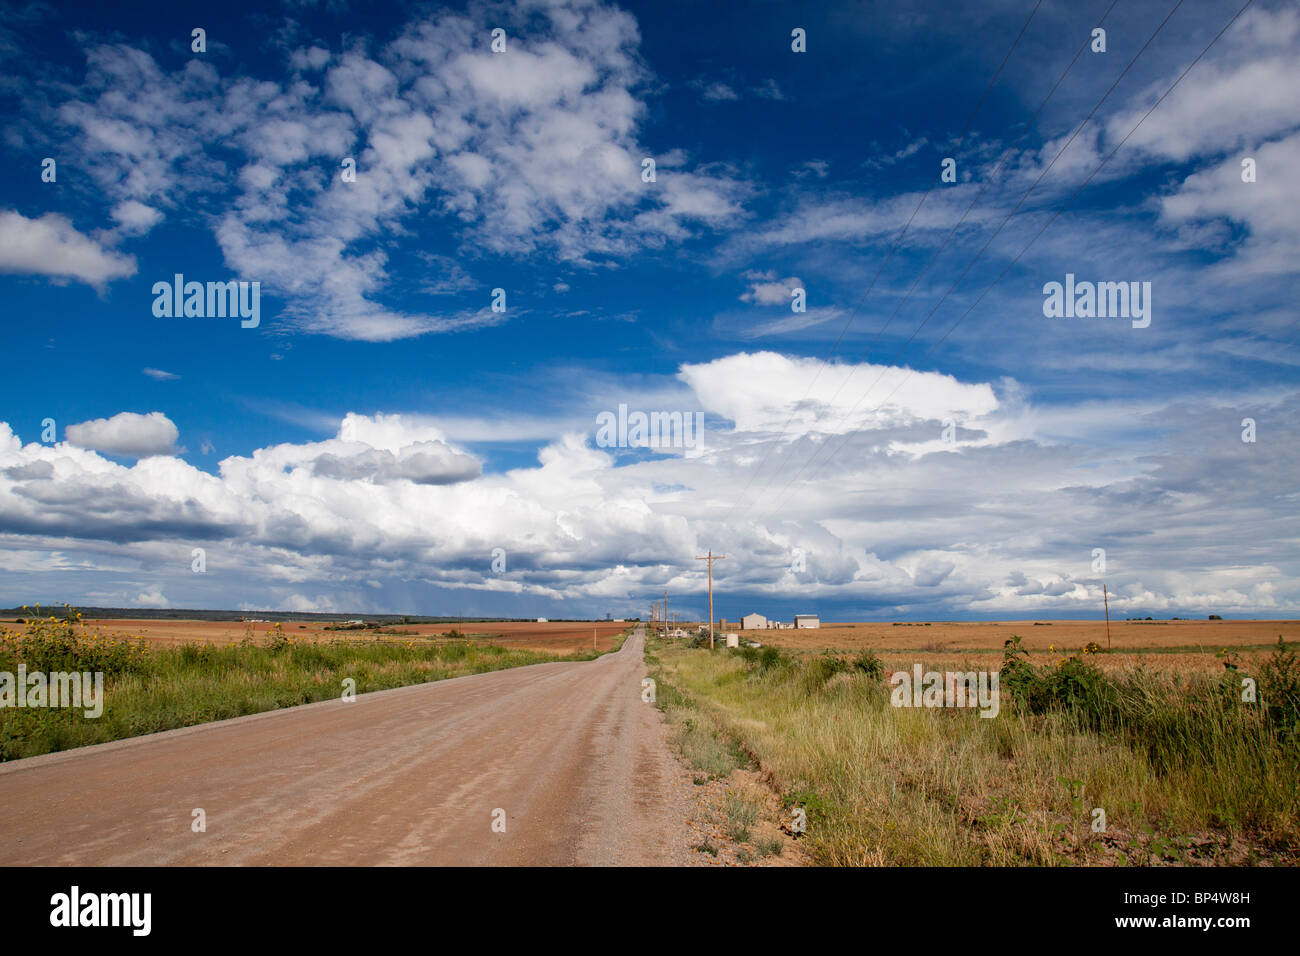 Picturesque scene of a farm along a dirt road in a vast rural landscape with cumulus cloud formations in southwest Stock Photo